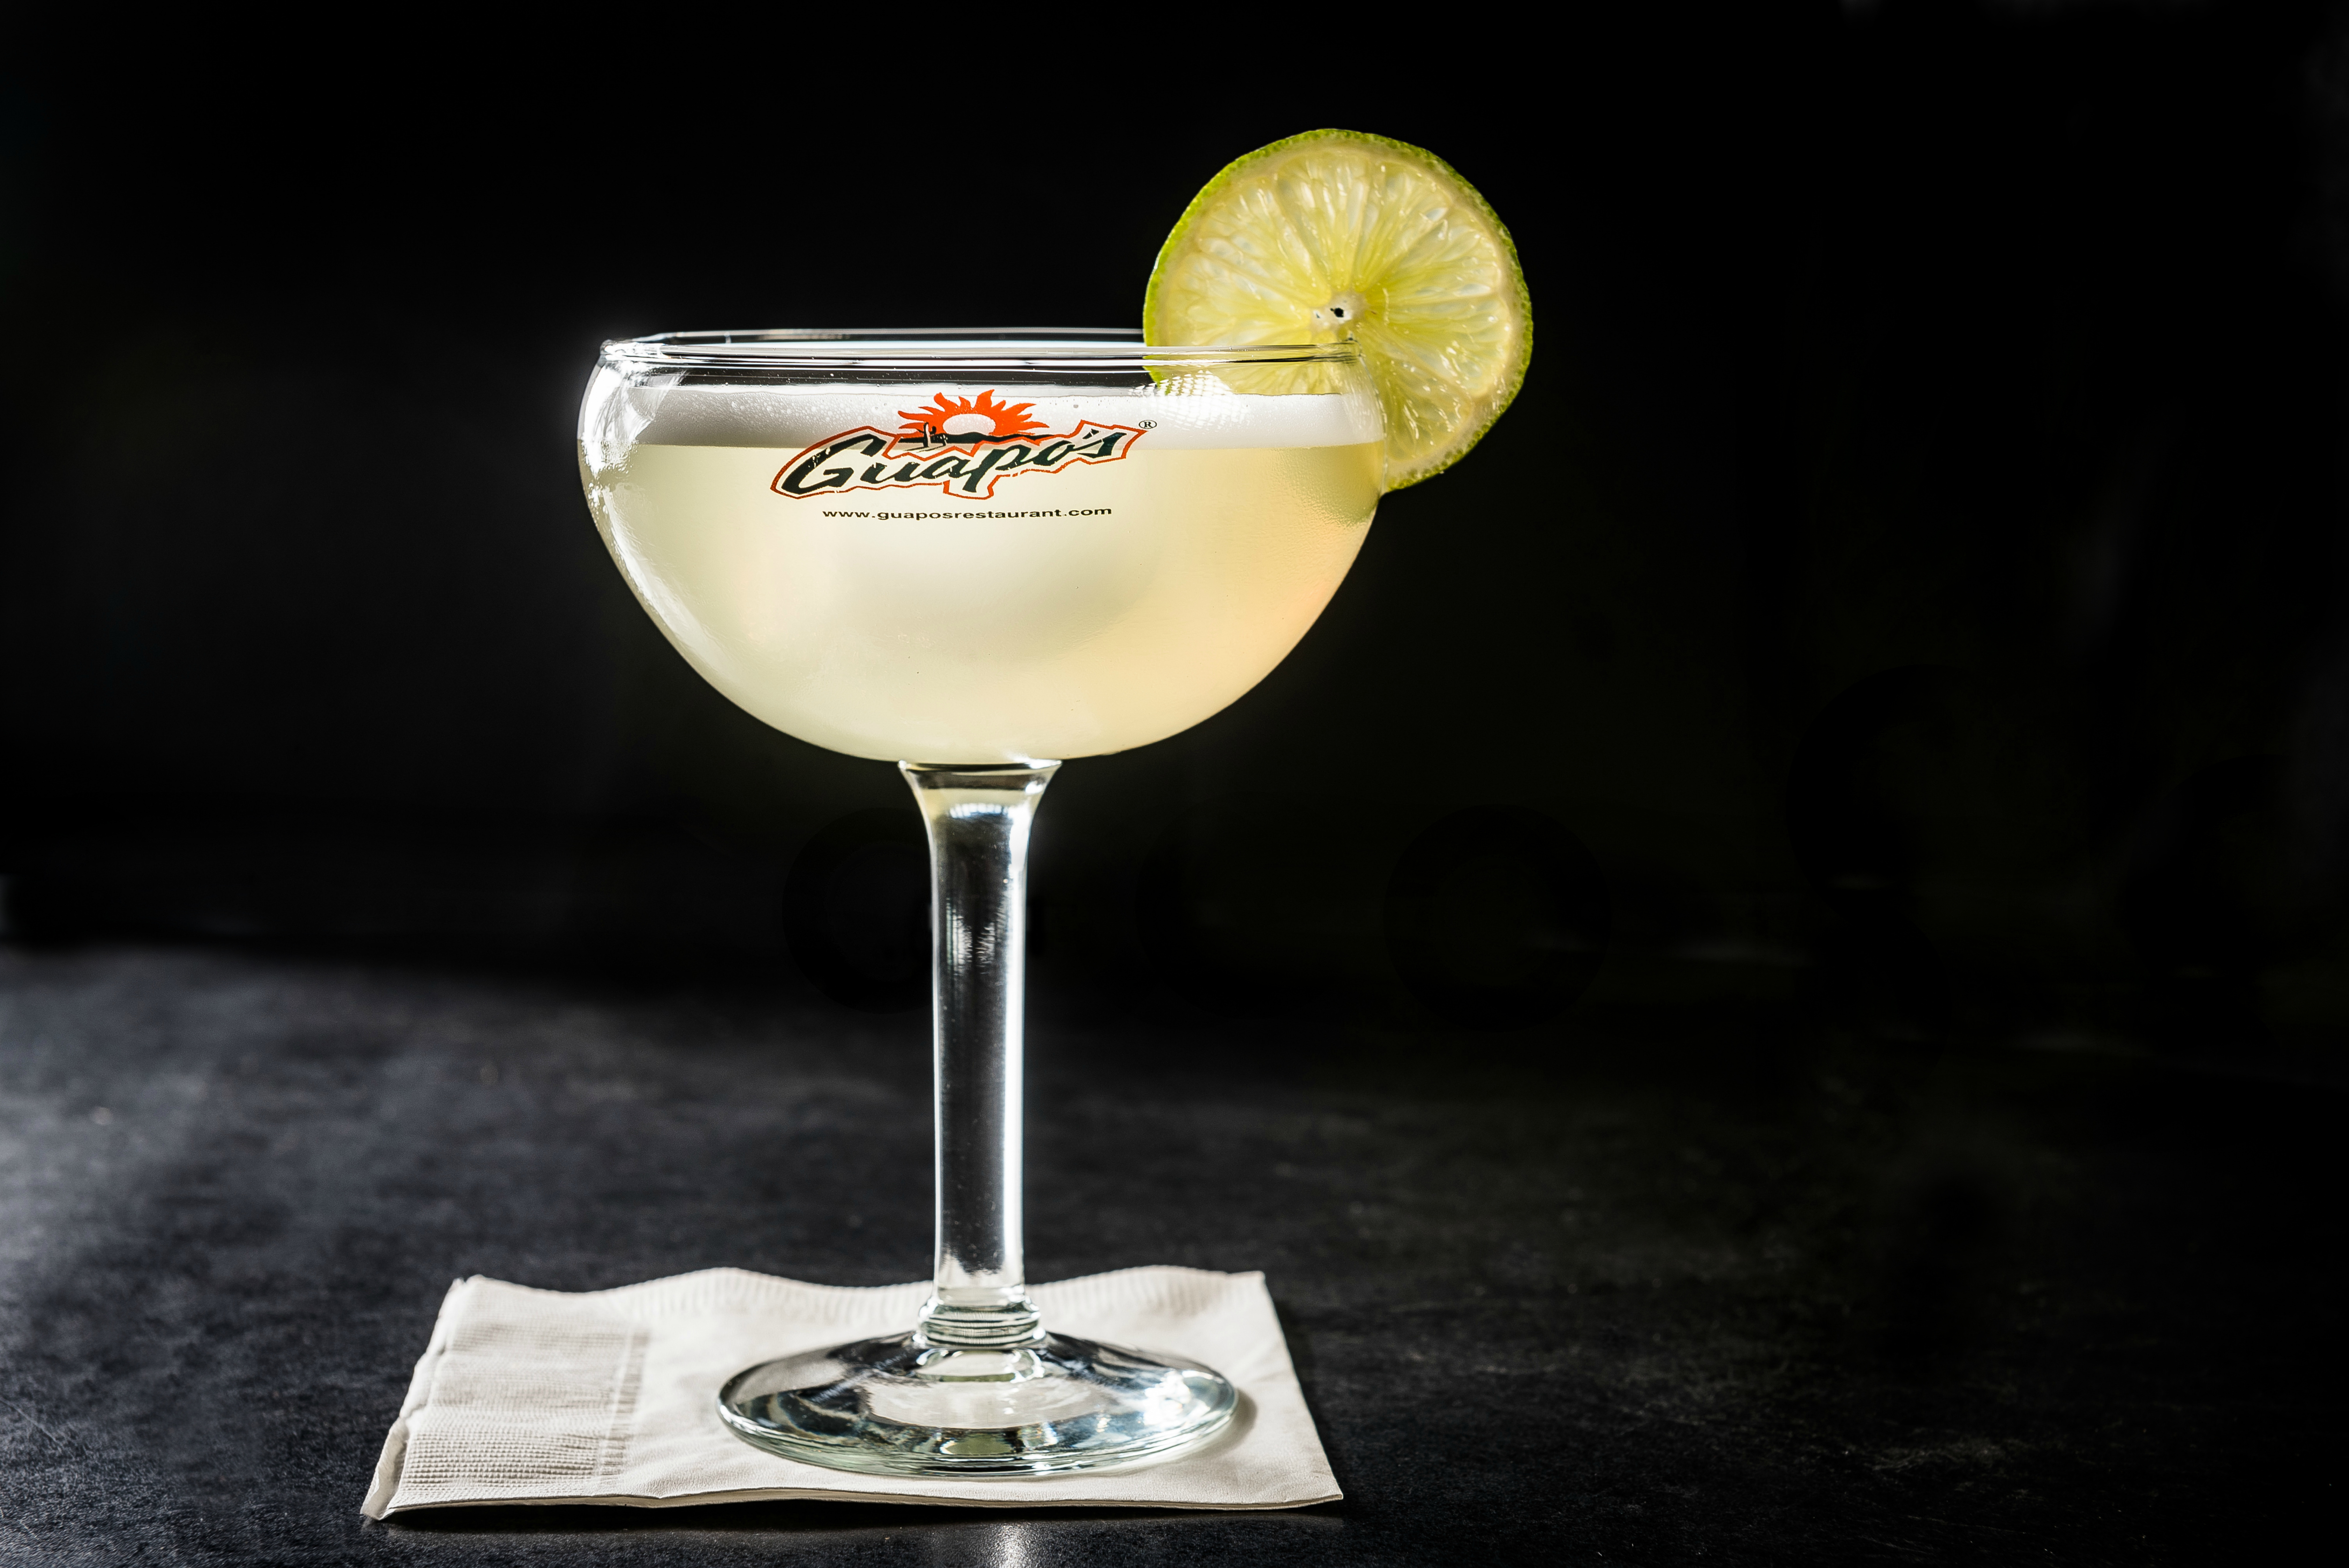 Classic Guapos Margarita: The Rincon family has kept this recipe a a secret for 20 years (Image: Rey Lopez)